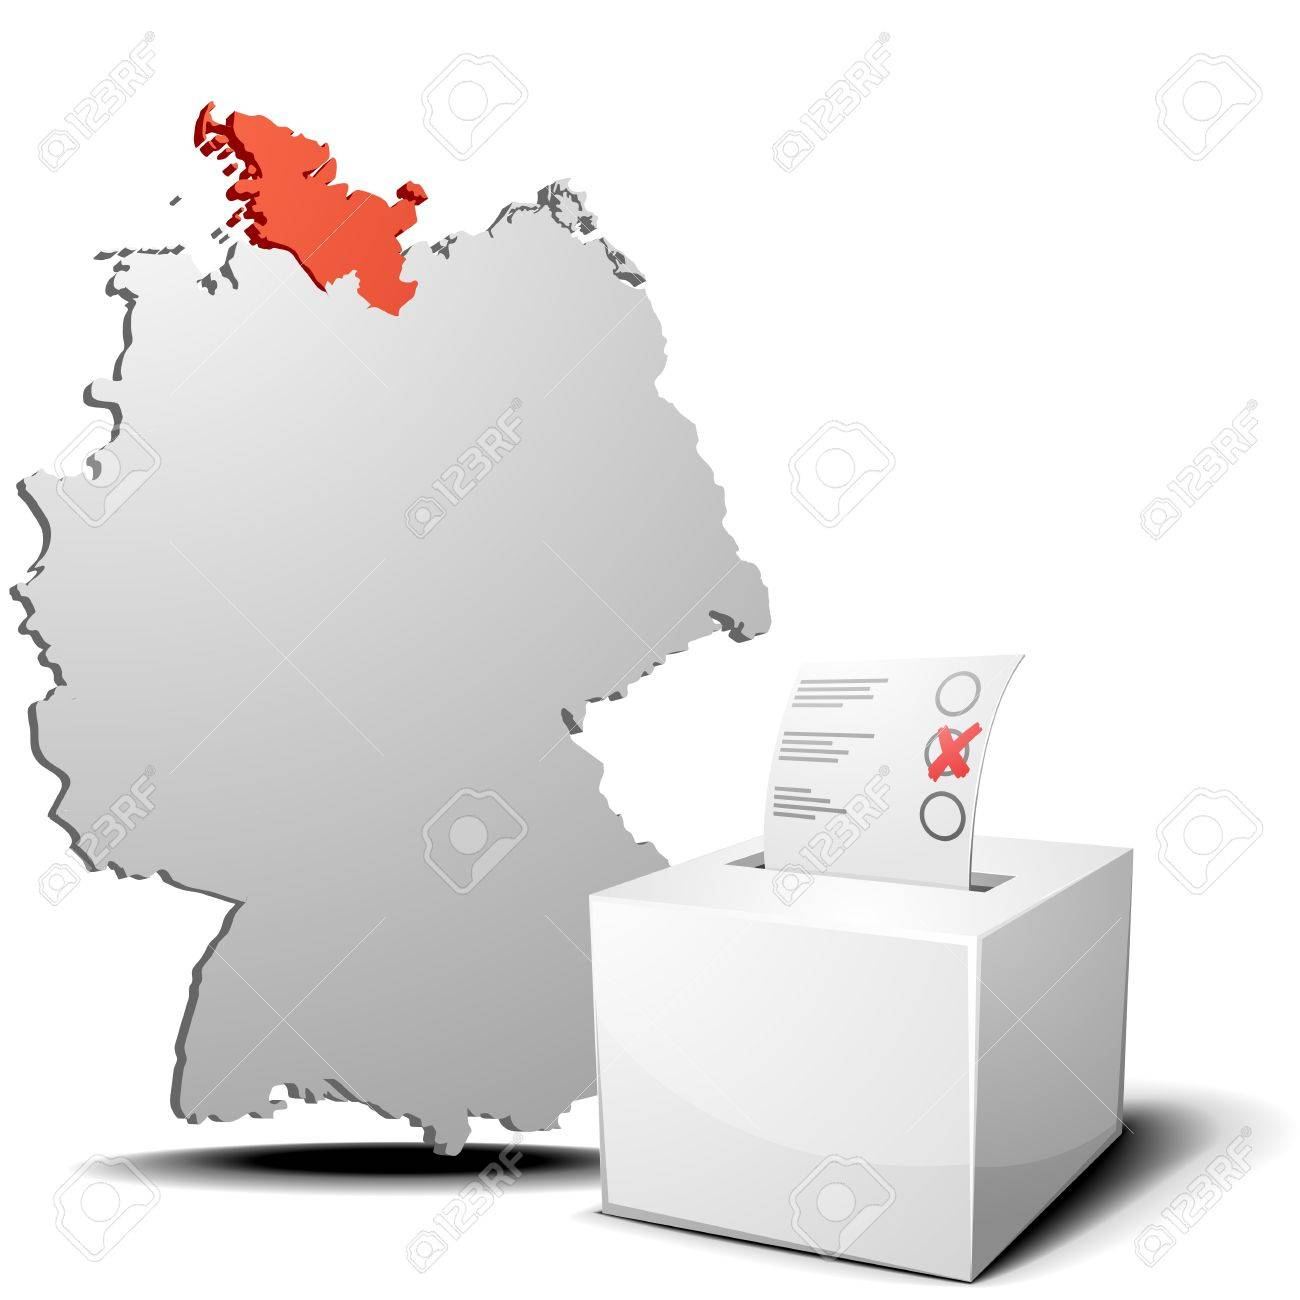 detailed illustration of ballot box in front of a 3D outline of Germany with a red marked province Schleswig-Holstein Stock Vector - 17753692